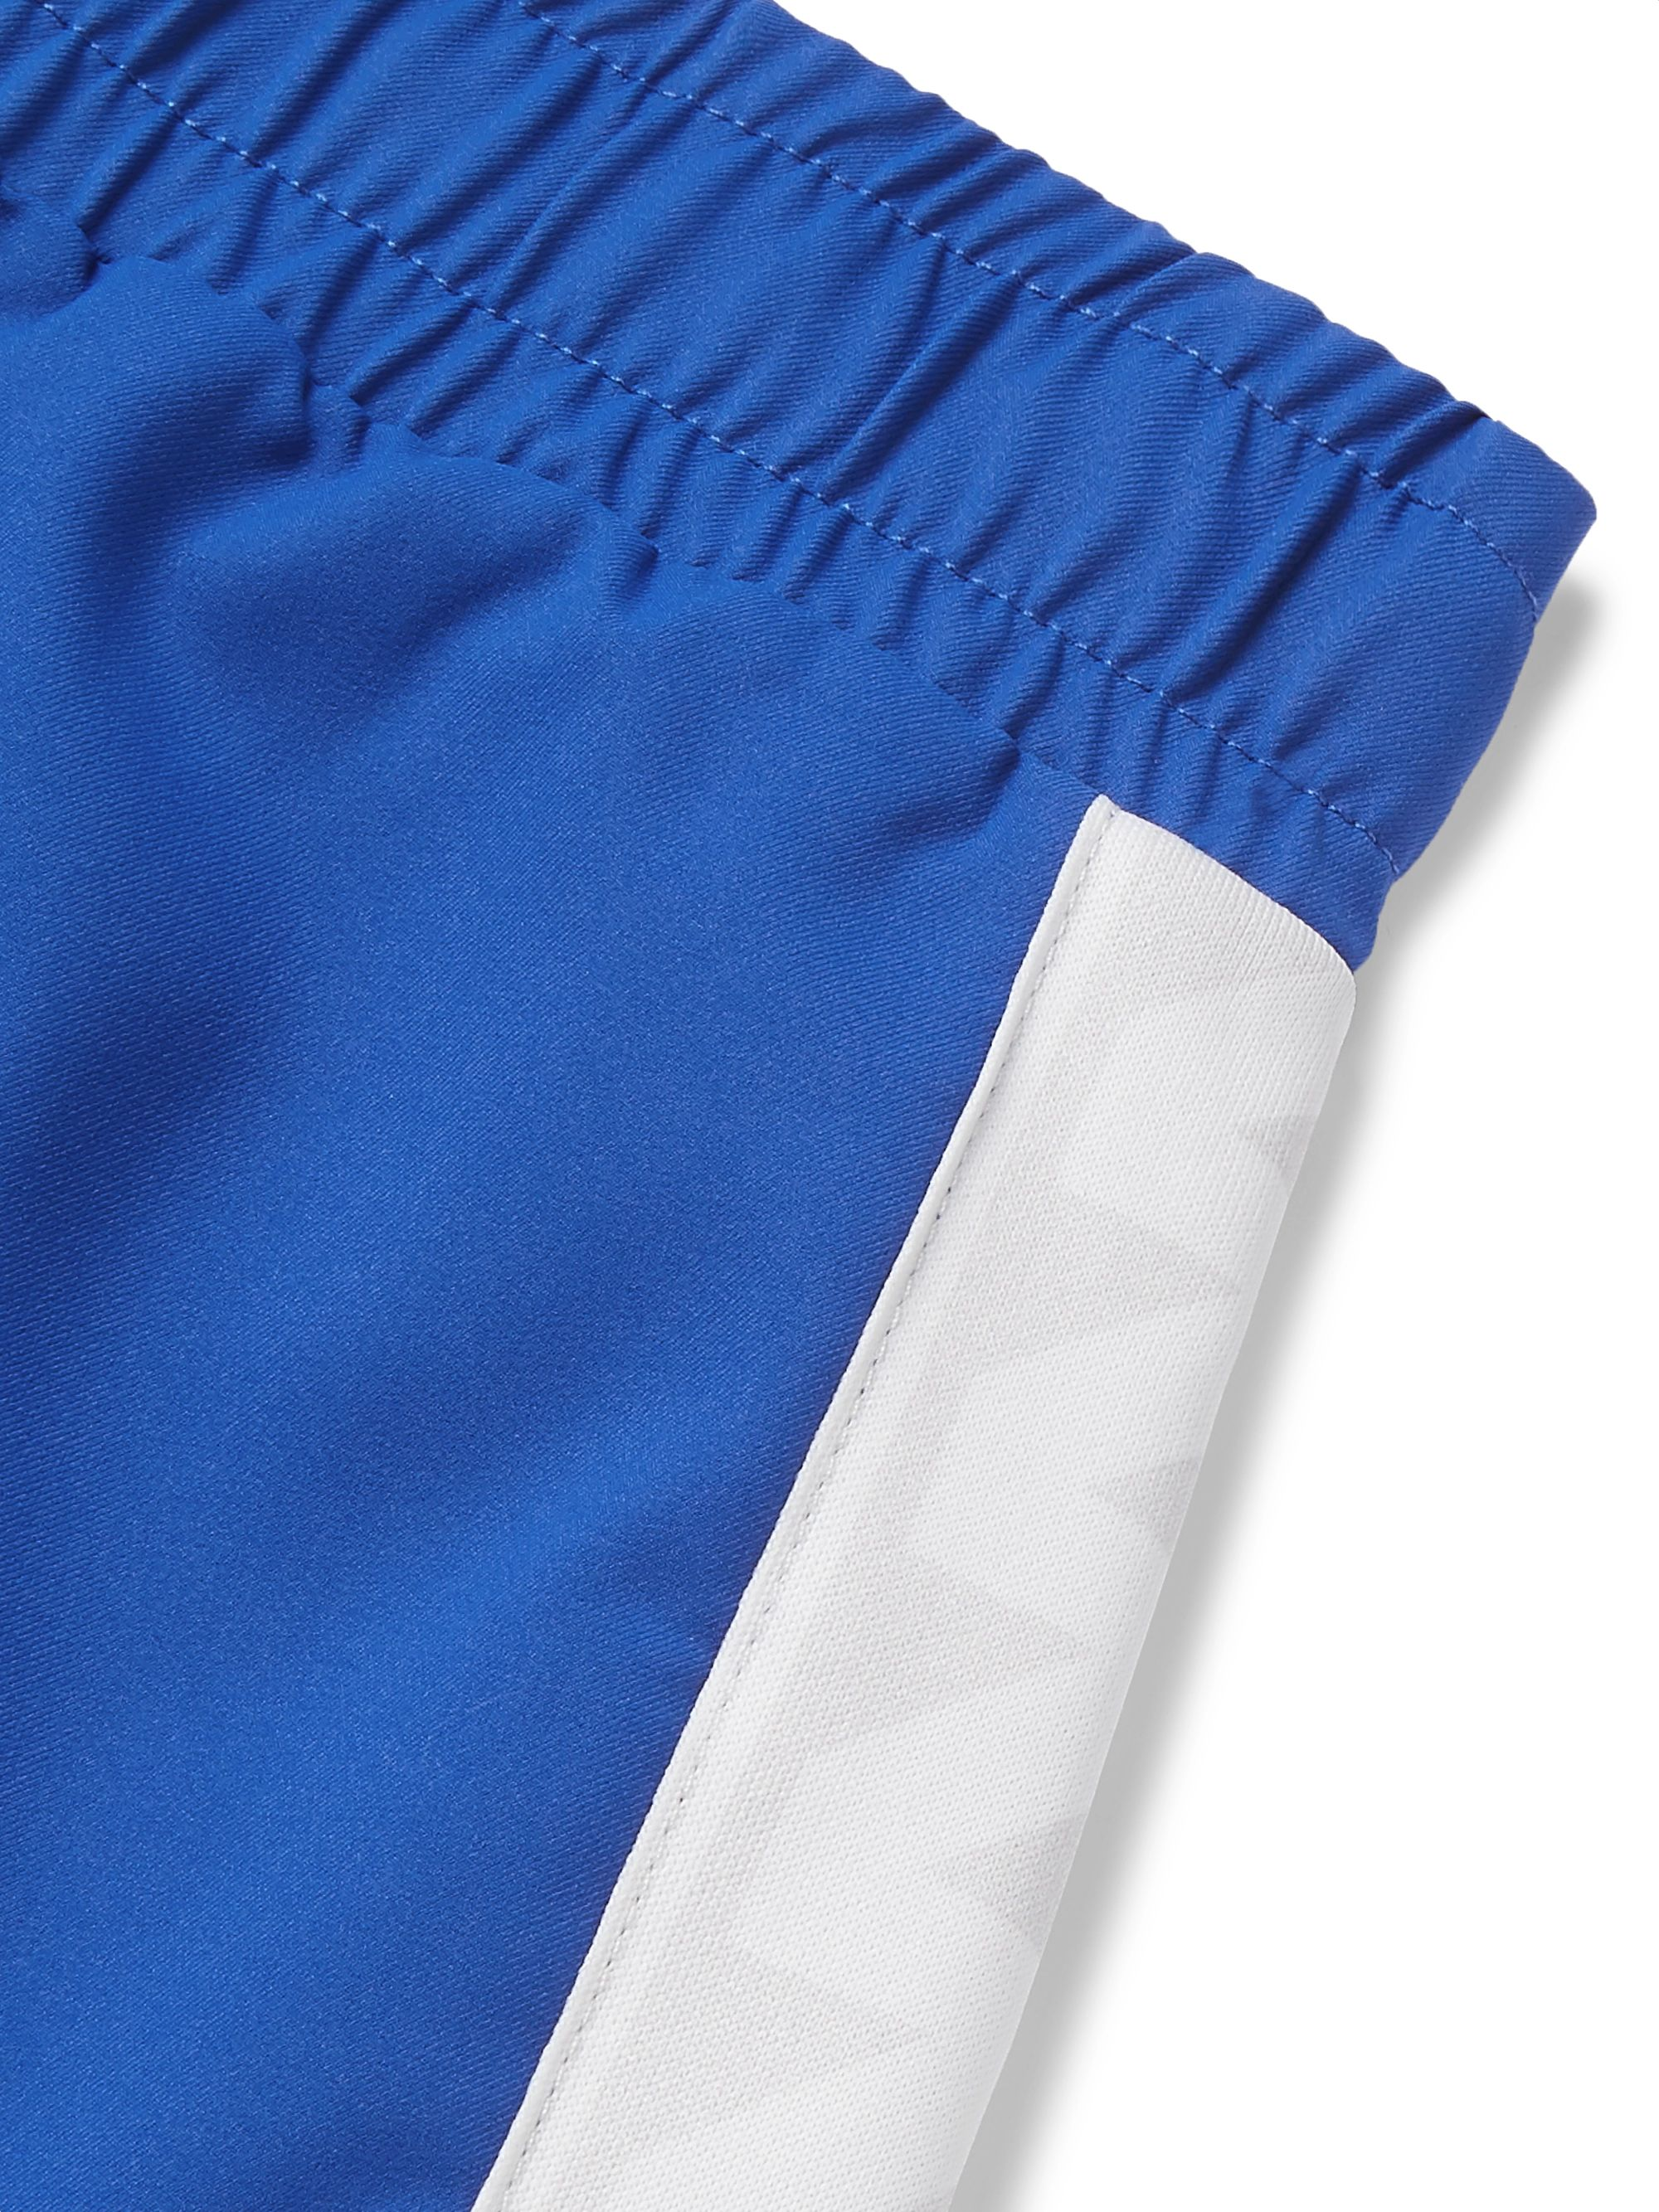 Nike Tennis Rafa NikeCourt Dri-FIT Shorts